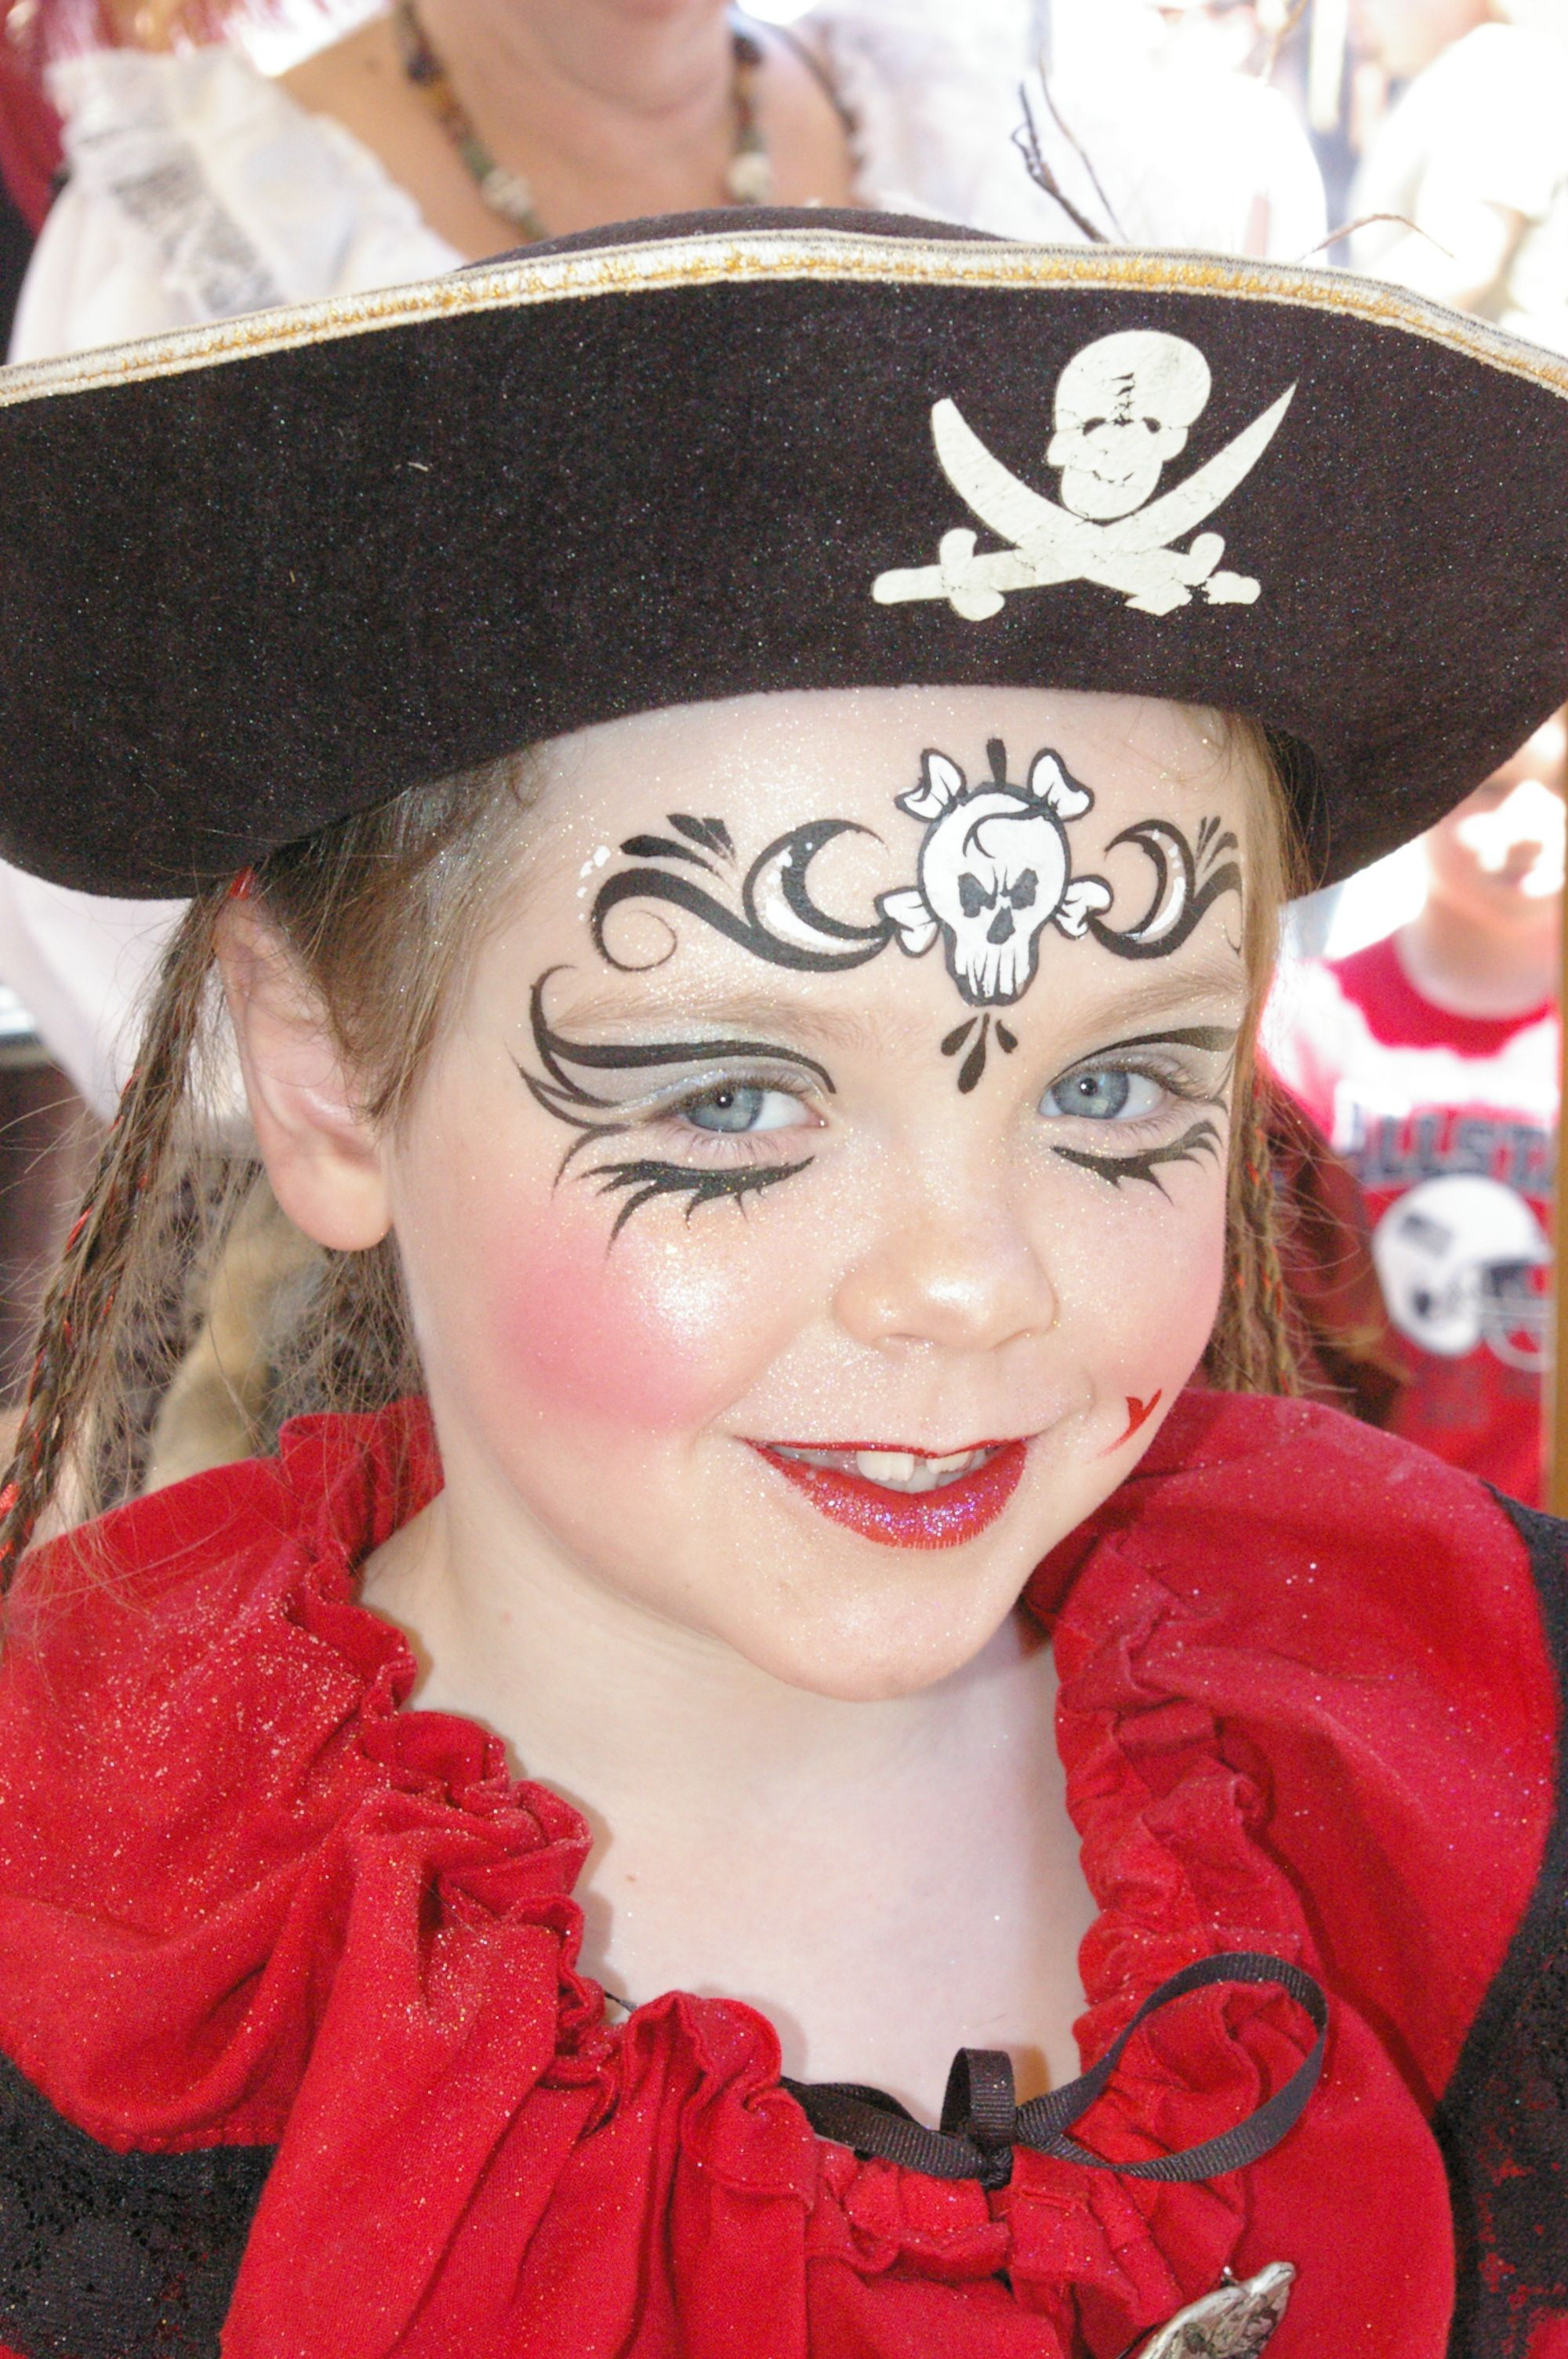 les yeux Maquillage Pirate Fille, Maquillage Filles, Maquillage Carnaval,  Maquillage Déguisement, Maquillage